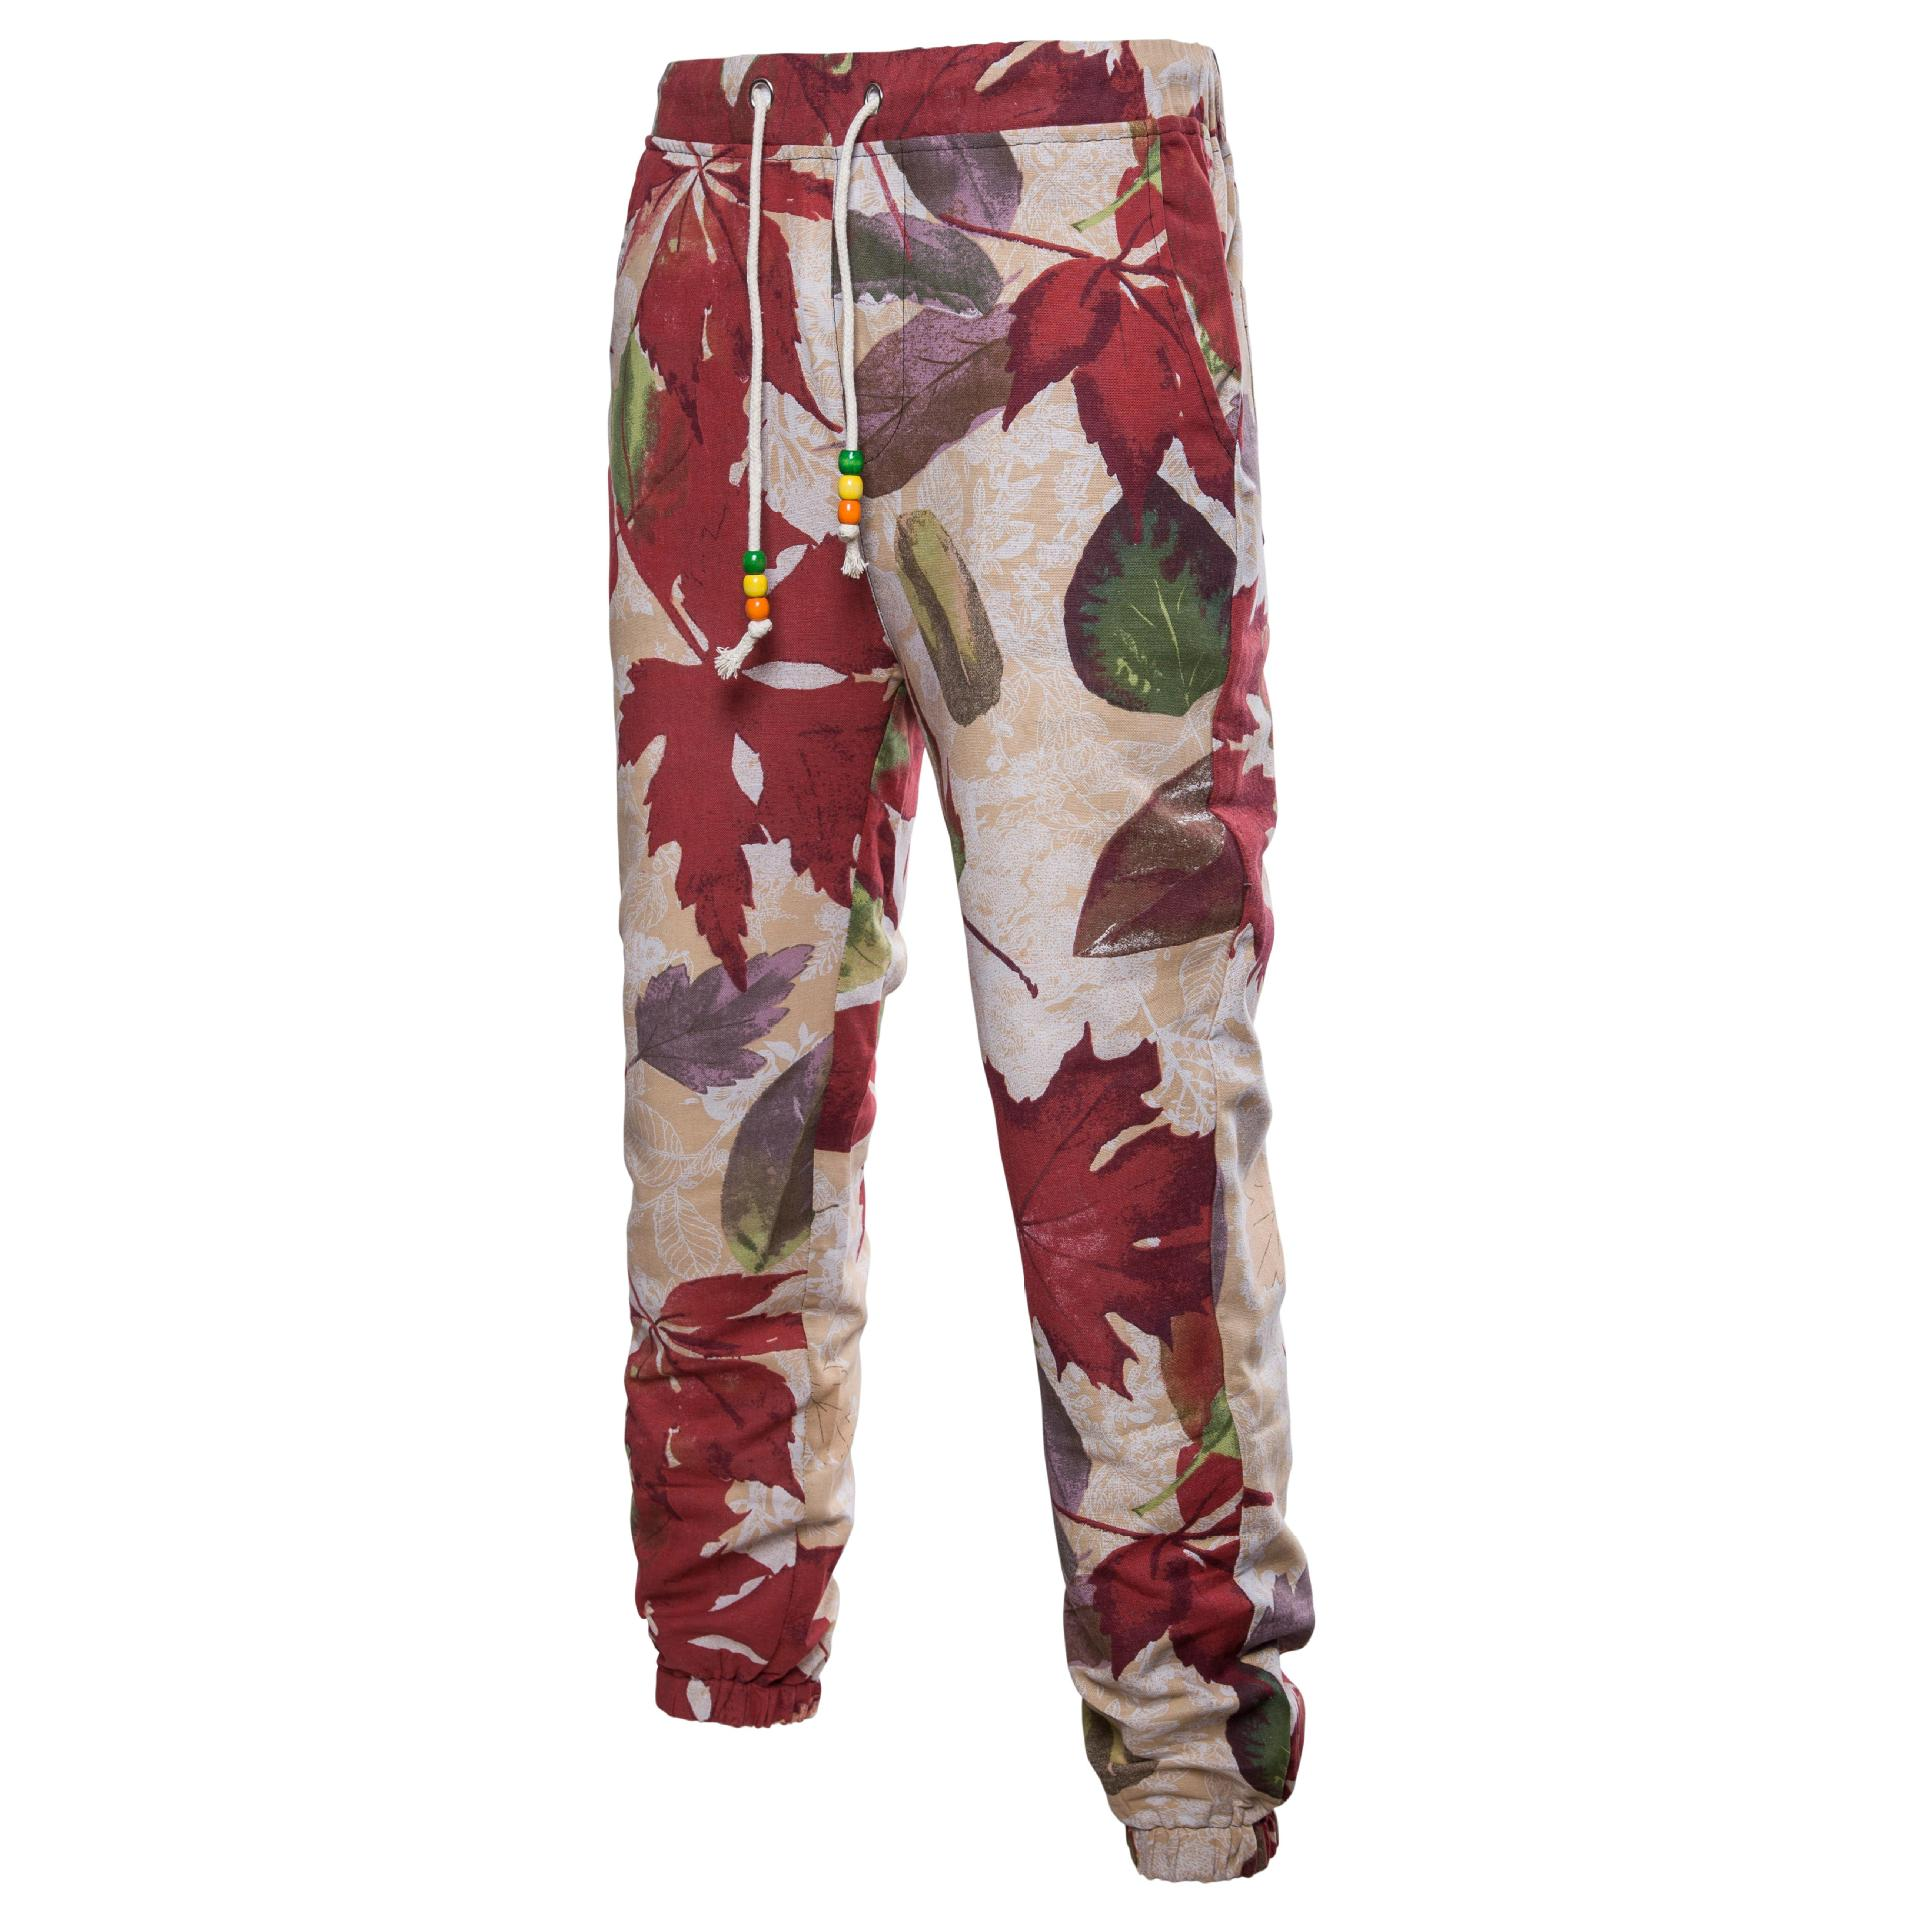 2018 New Style Floral Ethnic-Style Trousers Linen Pants Plus-sized Menswear Casual Pants Men's